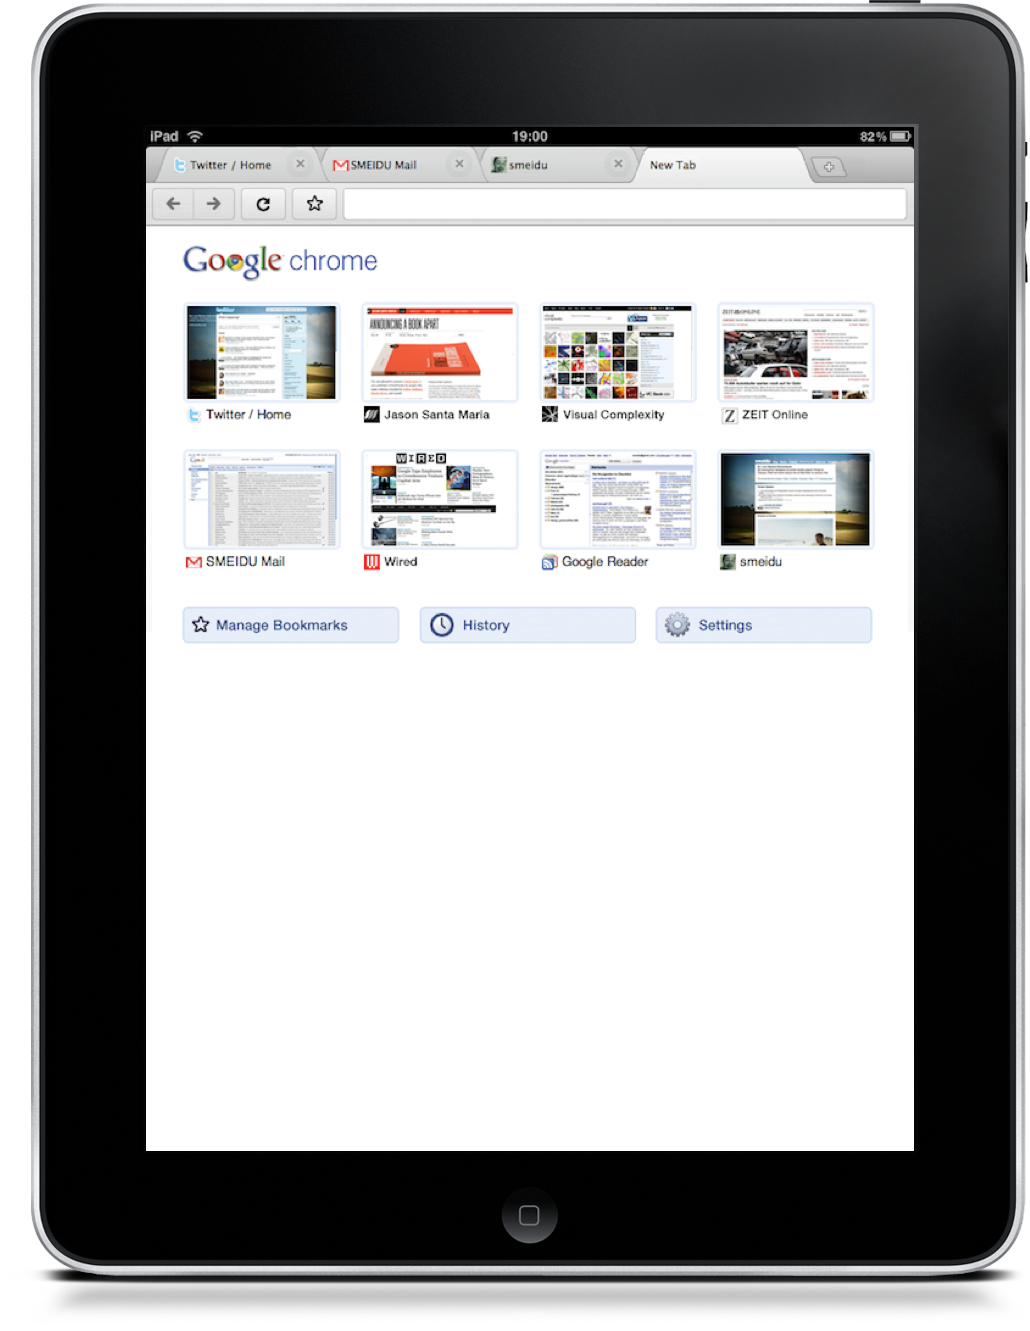 google chrome mockup for ipad is absolutely gorgeous